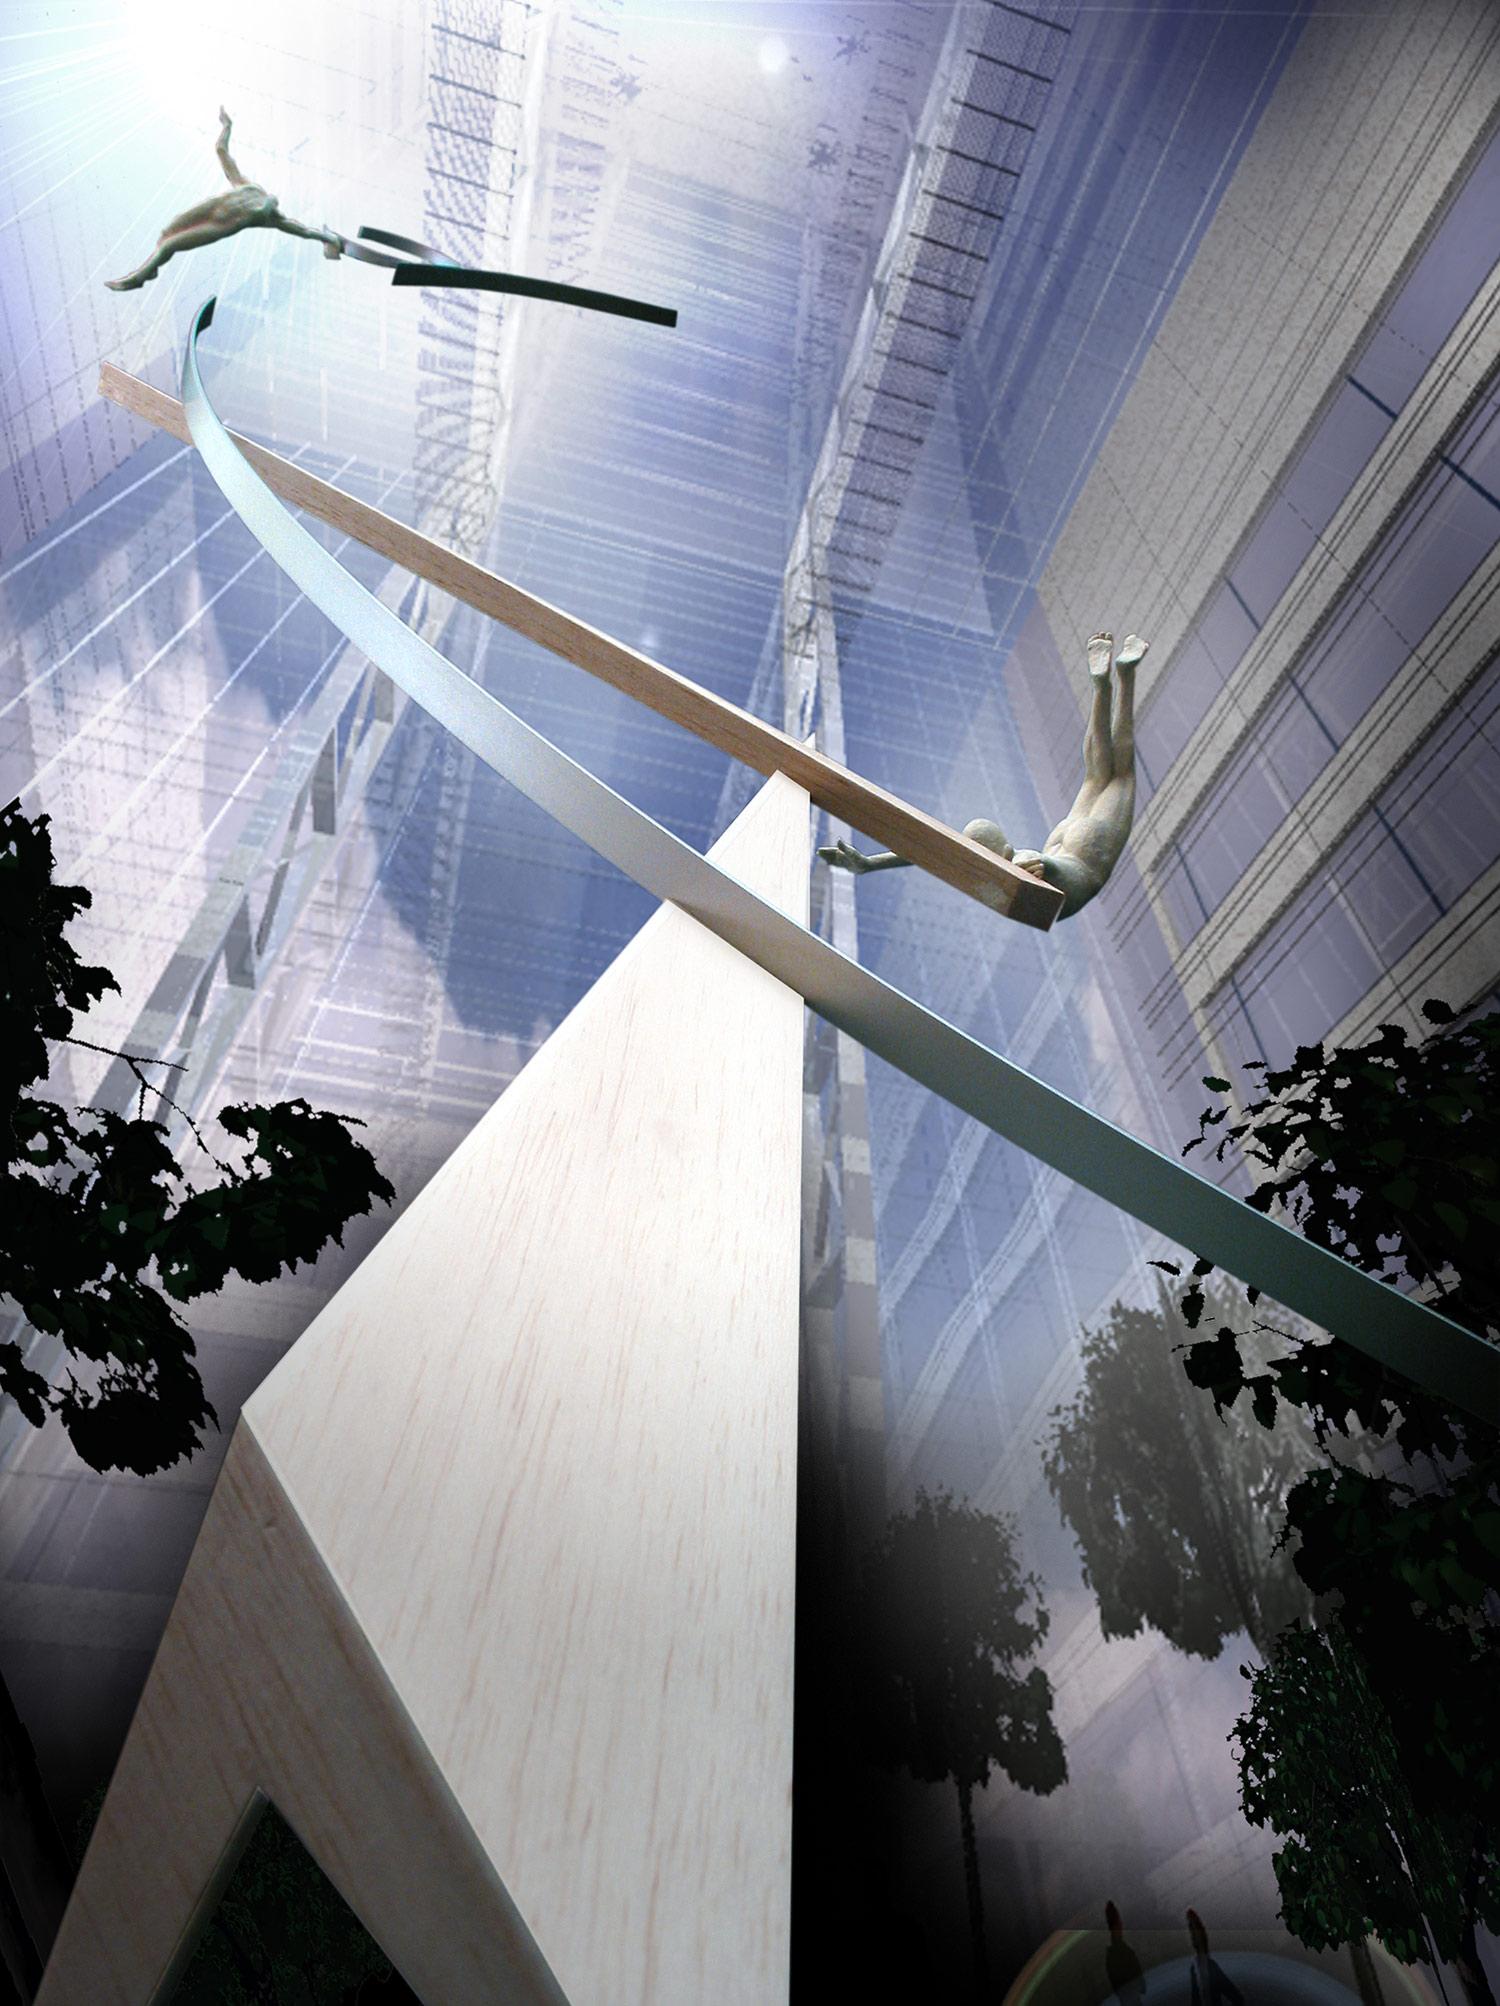 Archimedes Dream. 8. Canary Wharf. Pierre Diamantopoulo. Copyright.jpg